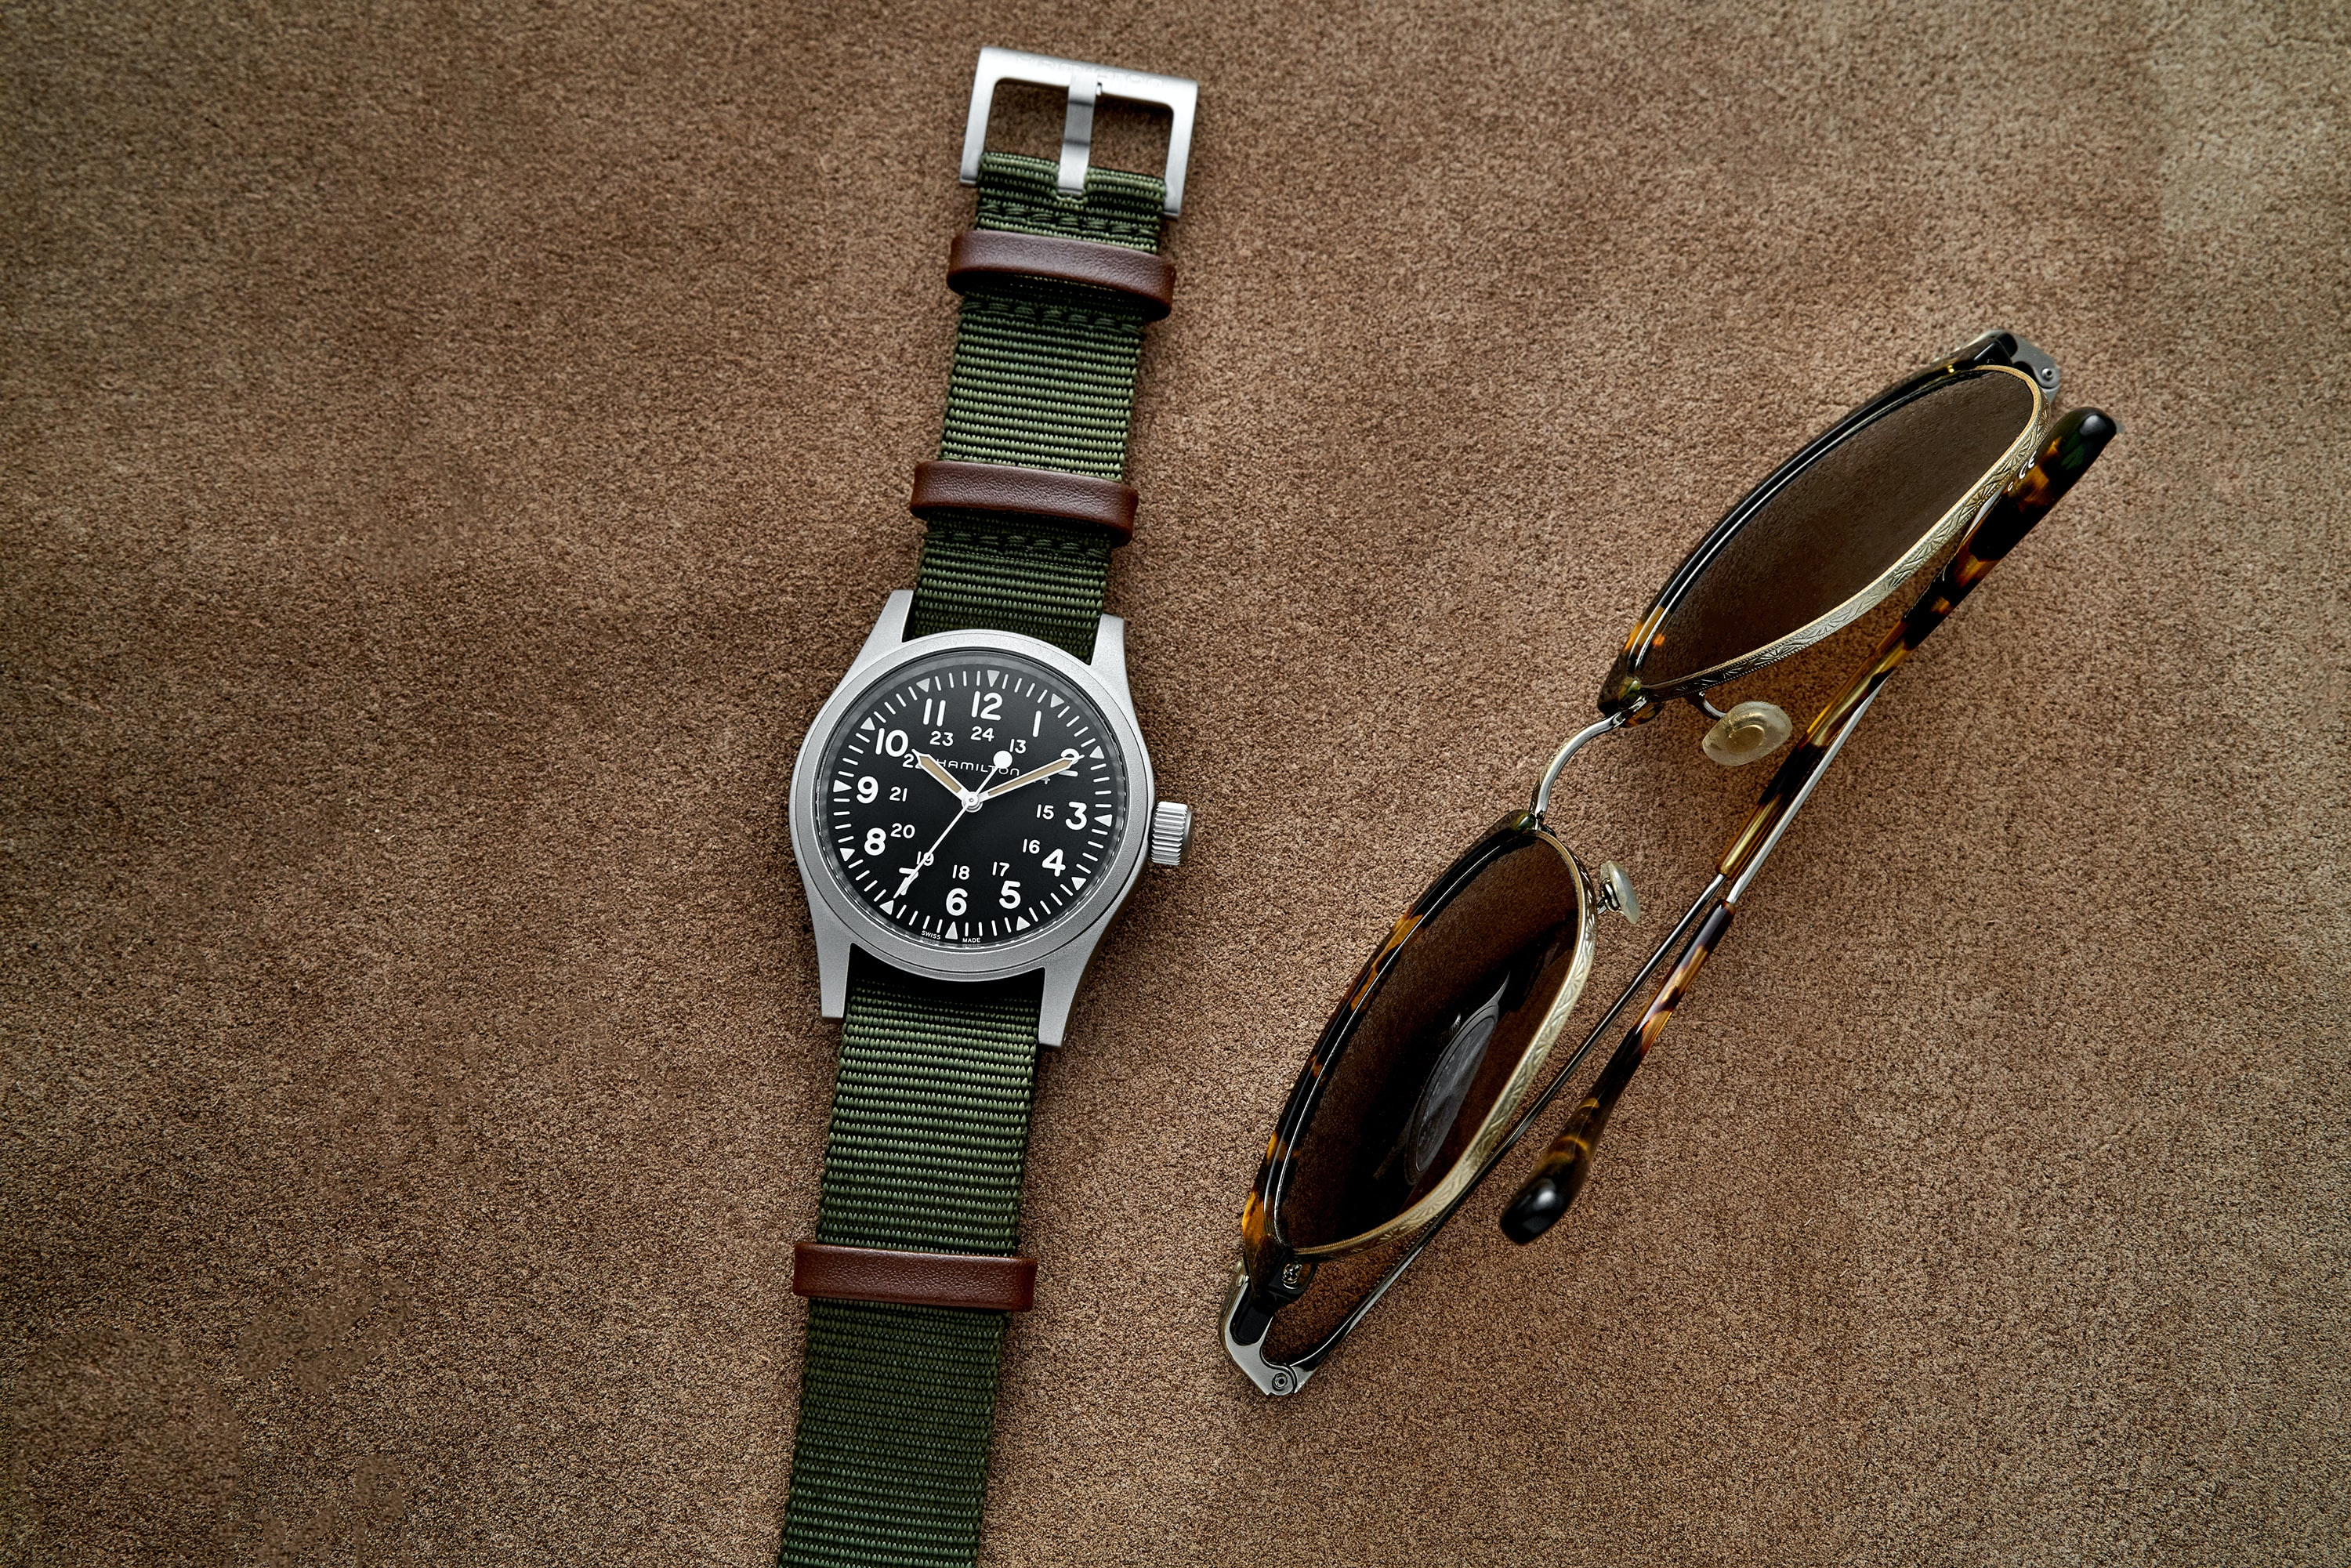 In The Shop - Introducing: The Hamilton Khaki Field Mechanical